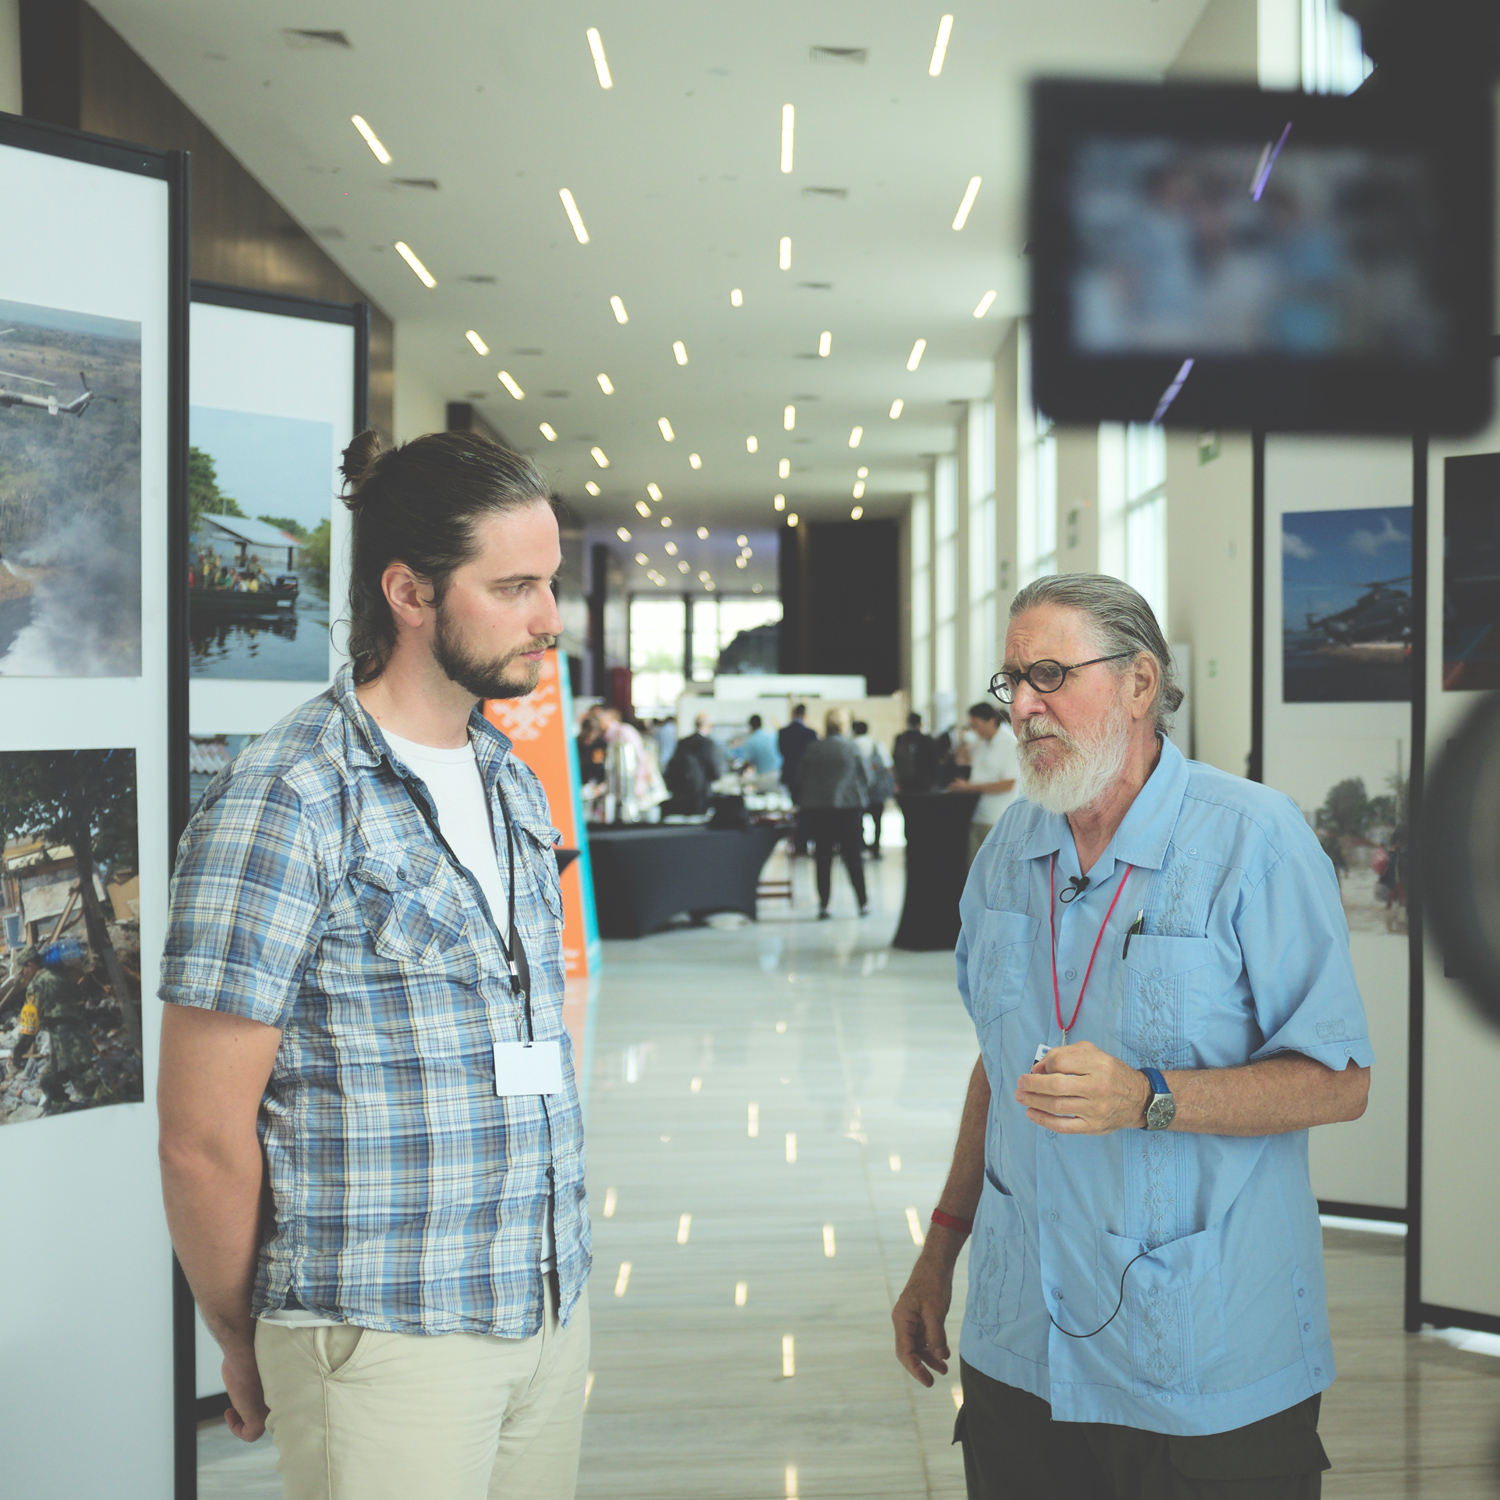 Challenging perceptions of disaster through film